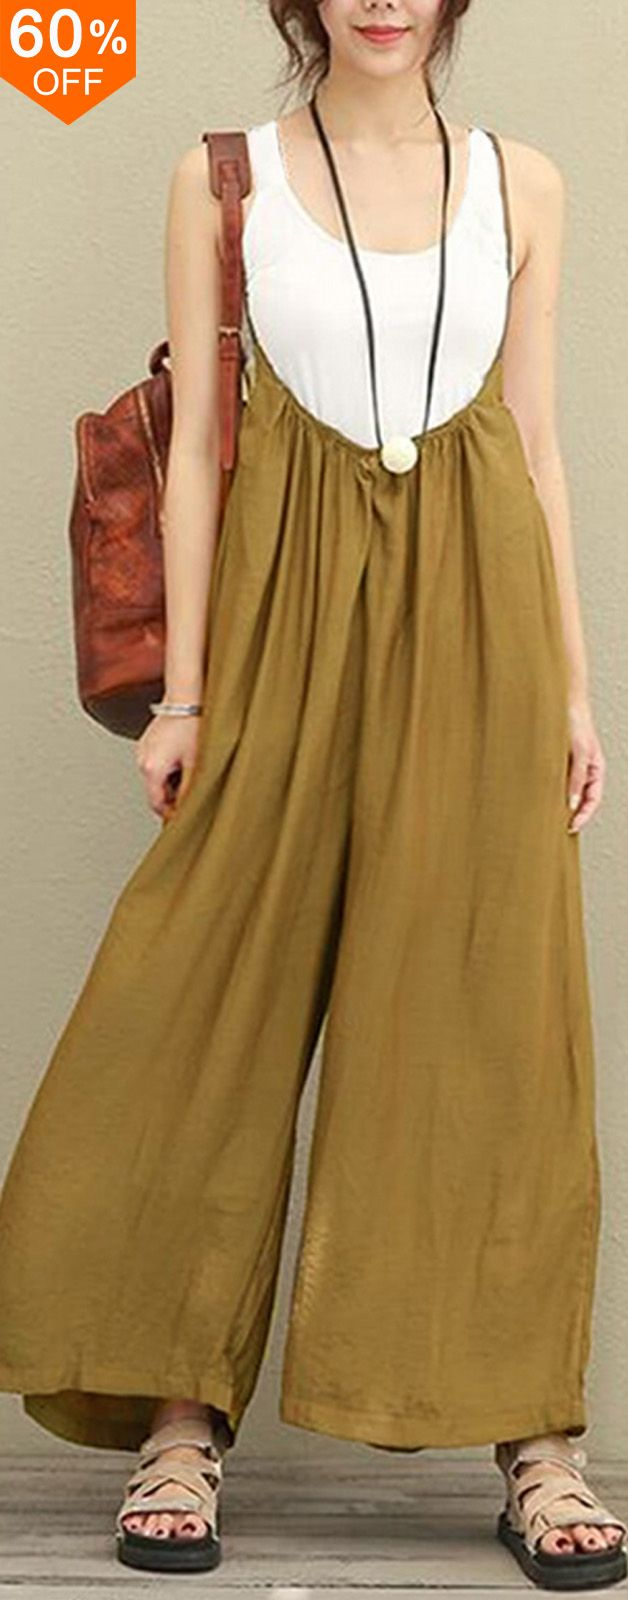 Women Casual Sleeveless Strap Baggy Wide Leg Pant Jumpsuit Rompers.  #women #leggings #fashion